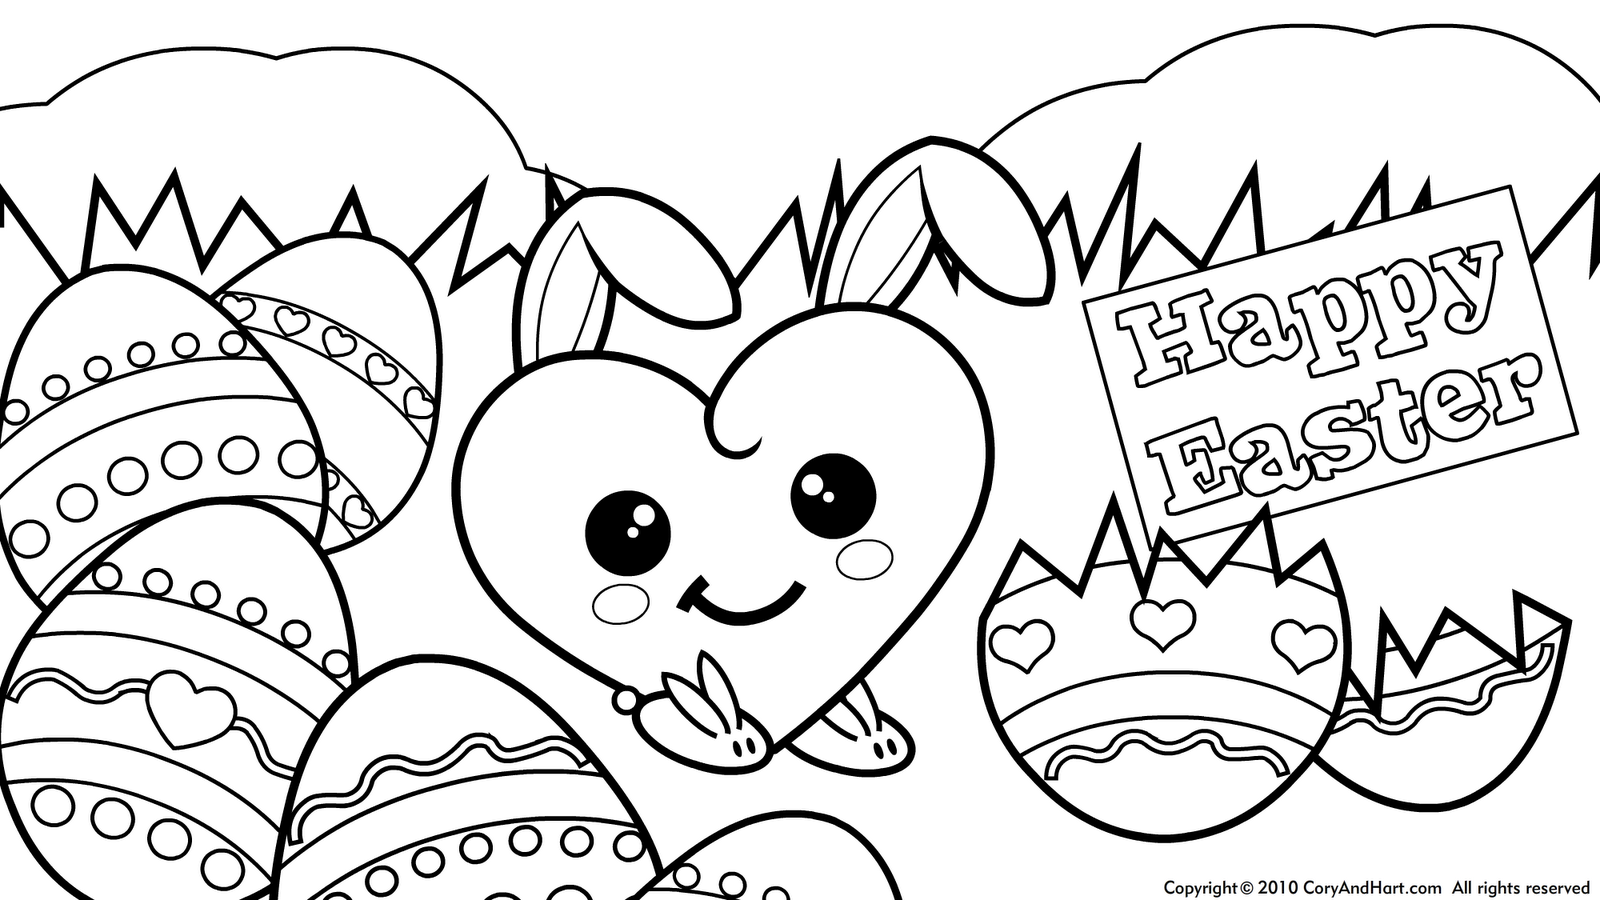 coloring pages of cute things coloring pages. Black Bedroom Furniture Sets. Home Design Ideas